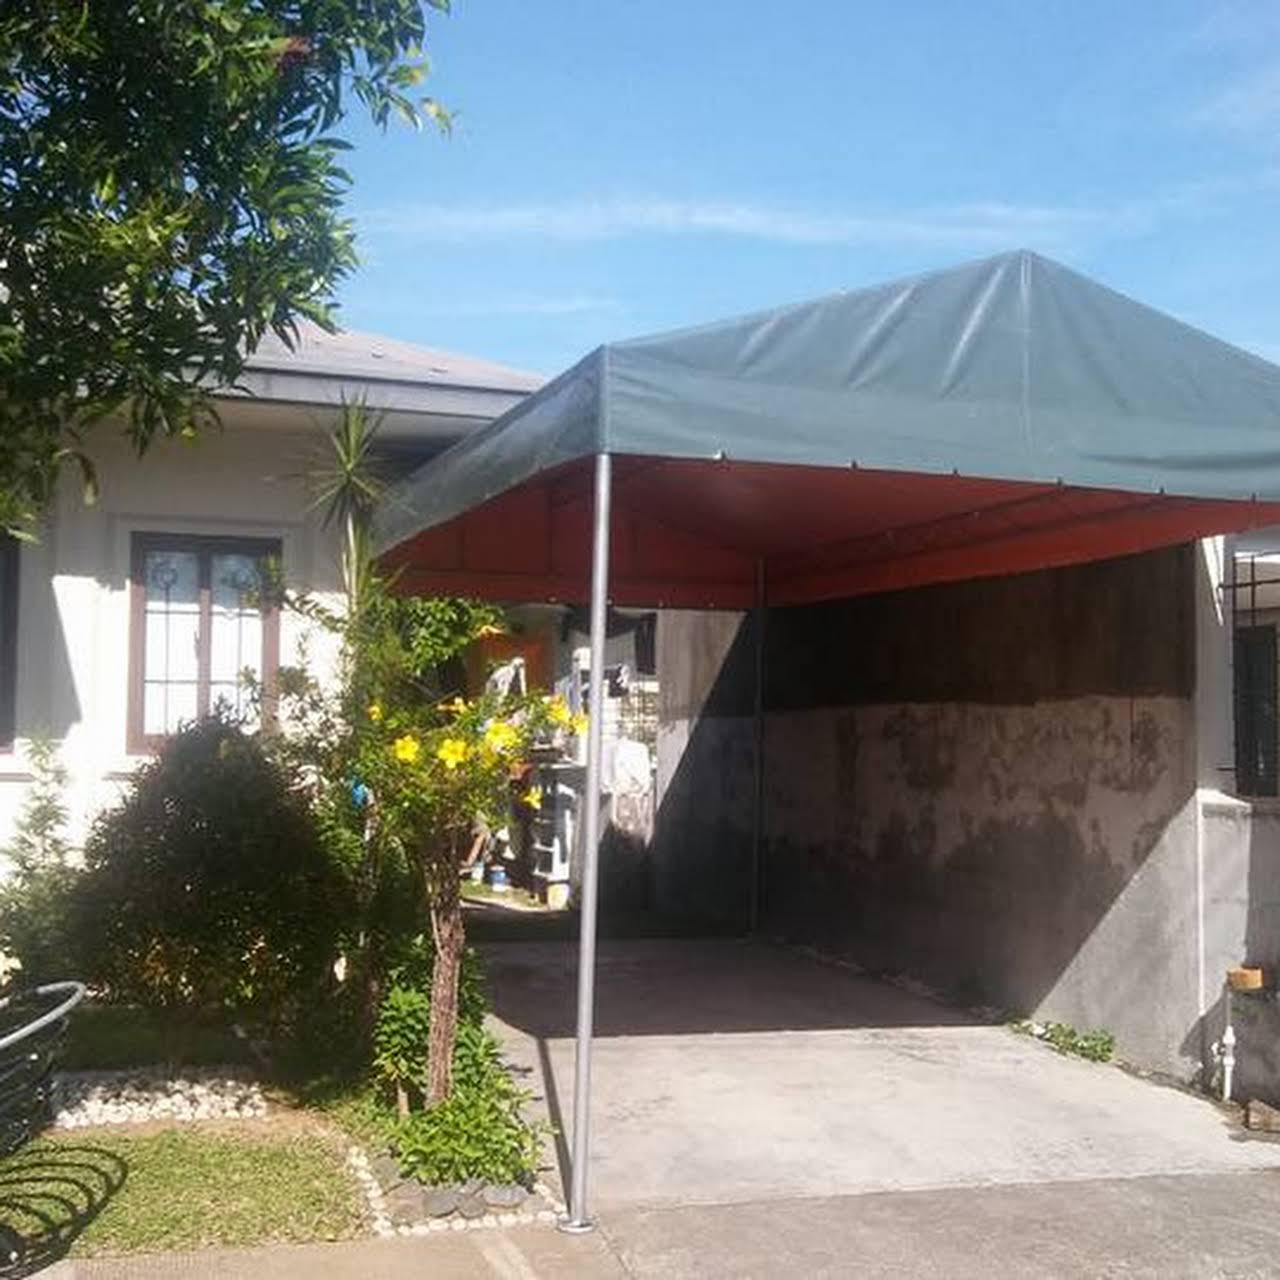 Jvs Trapal And Canopy Center Tent Rental Service And Fabricate Customize Car Garage Tent And Any Trapal Services In Davao City